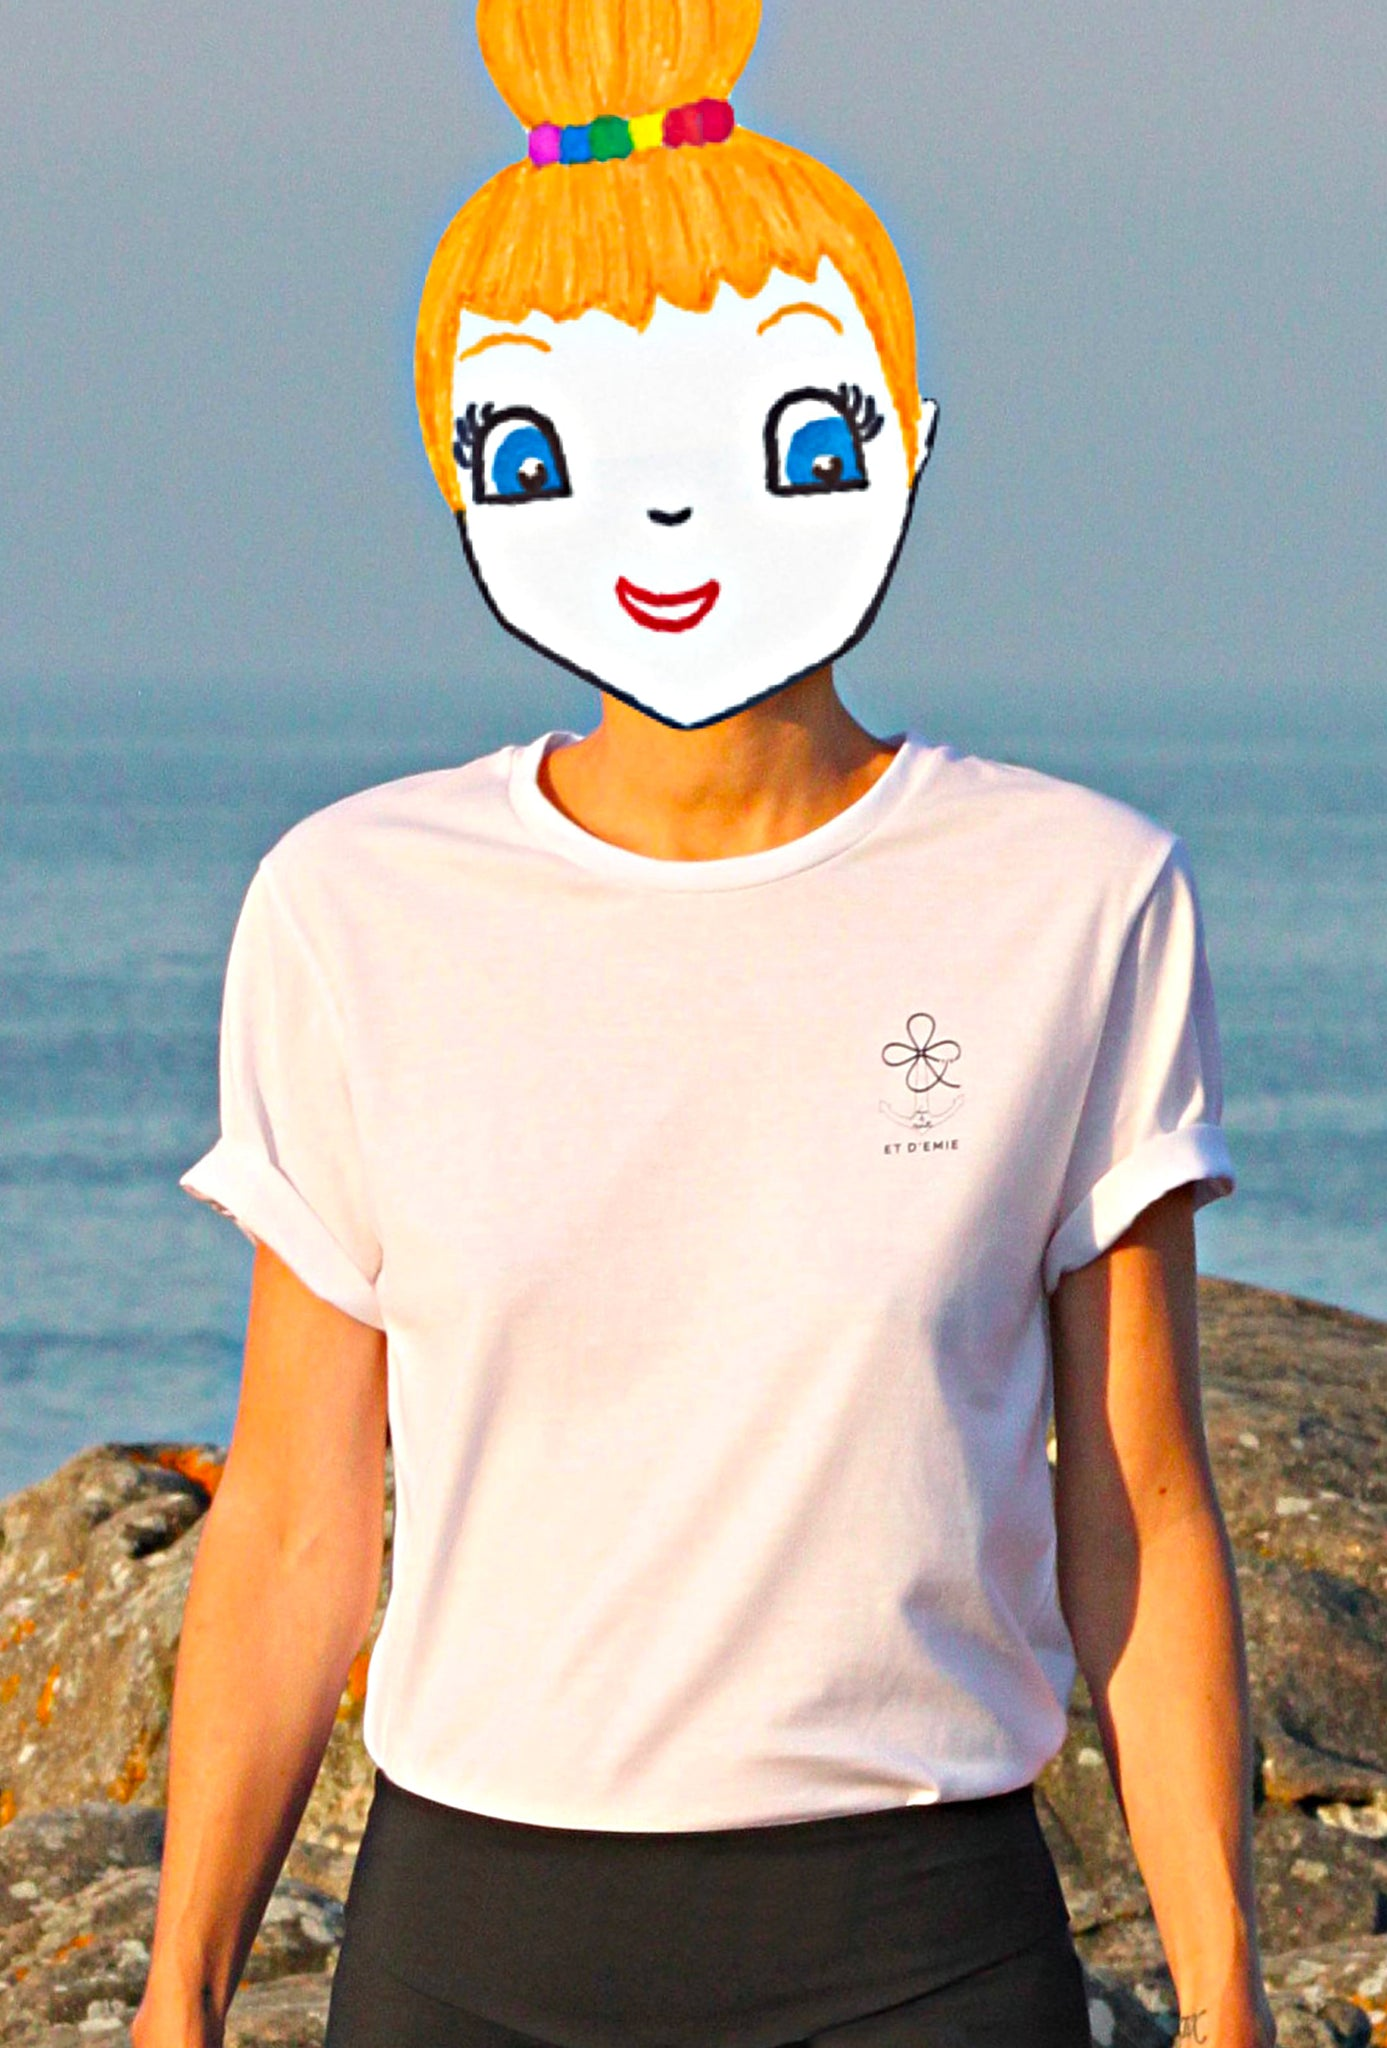 Unisex organic cotton t-shirt CHAP I Brittany 🇫🇷